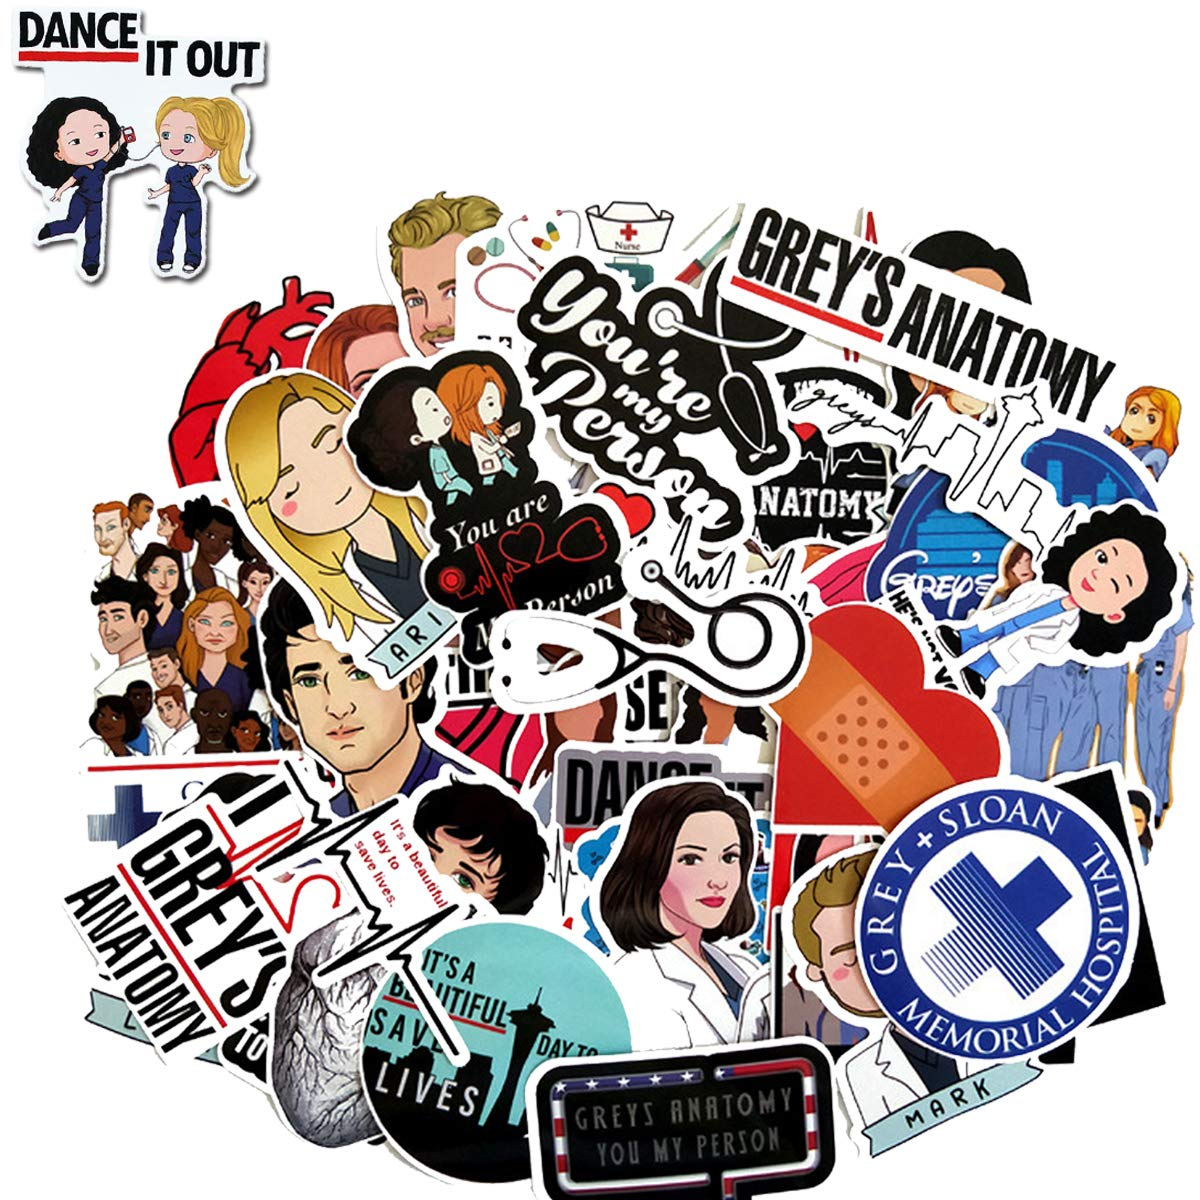 Grey's Anatomy Stickers, TV Show Greys Anatomy Funny Stickers Pack, Waterproof Vinyl Sticker for Laptop, Water Bottles, Hydroflasks, Phone, Computer (50 Pack)